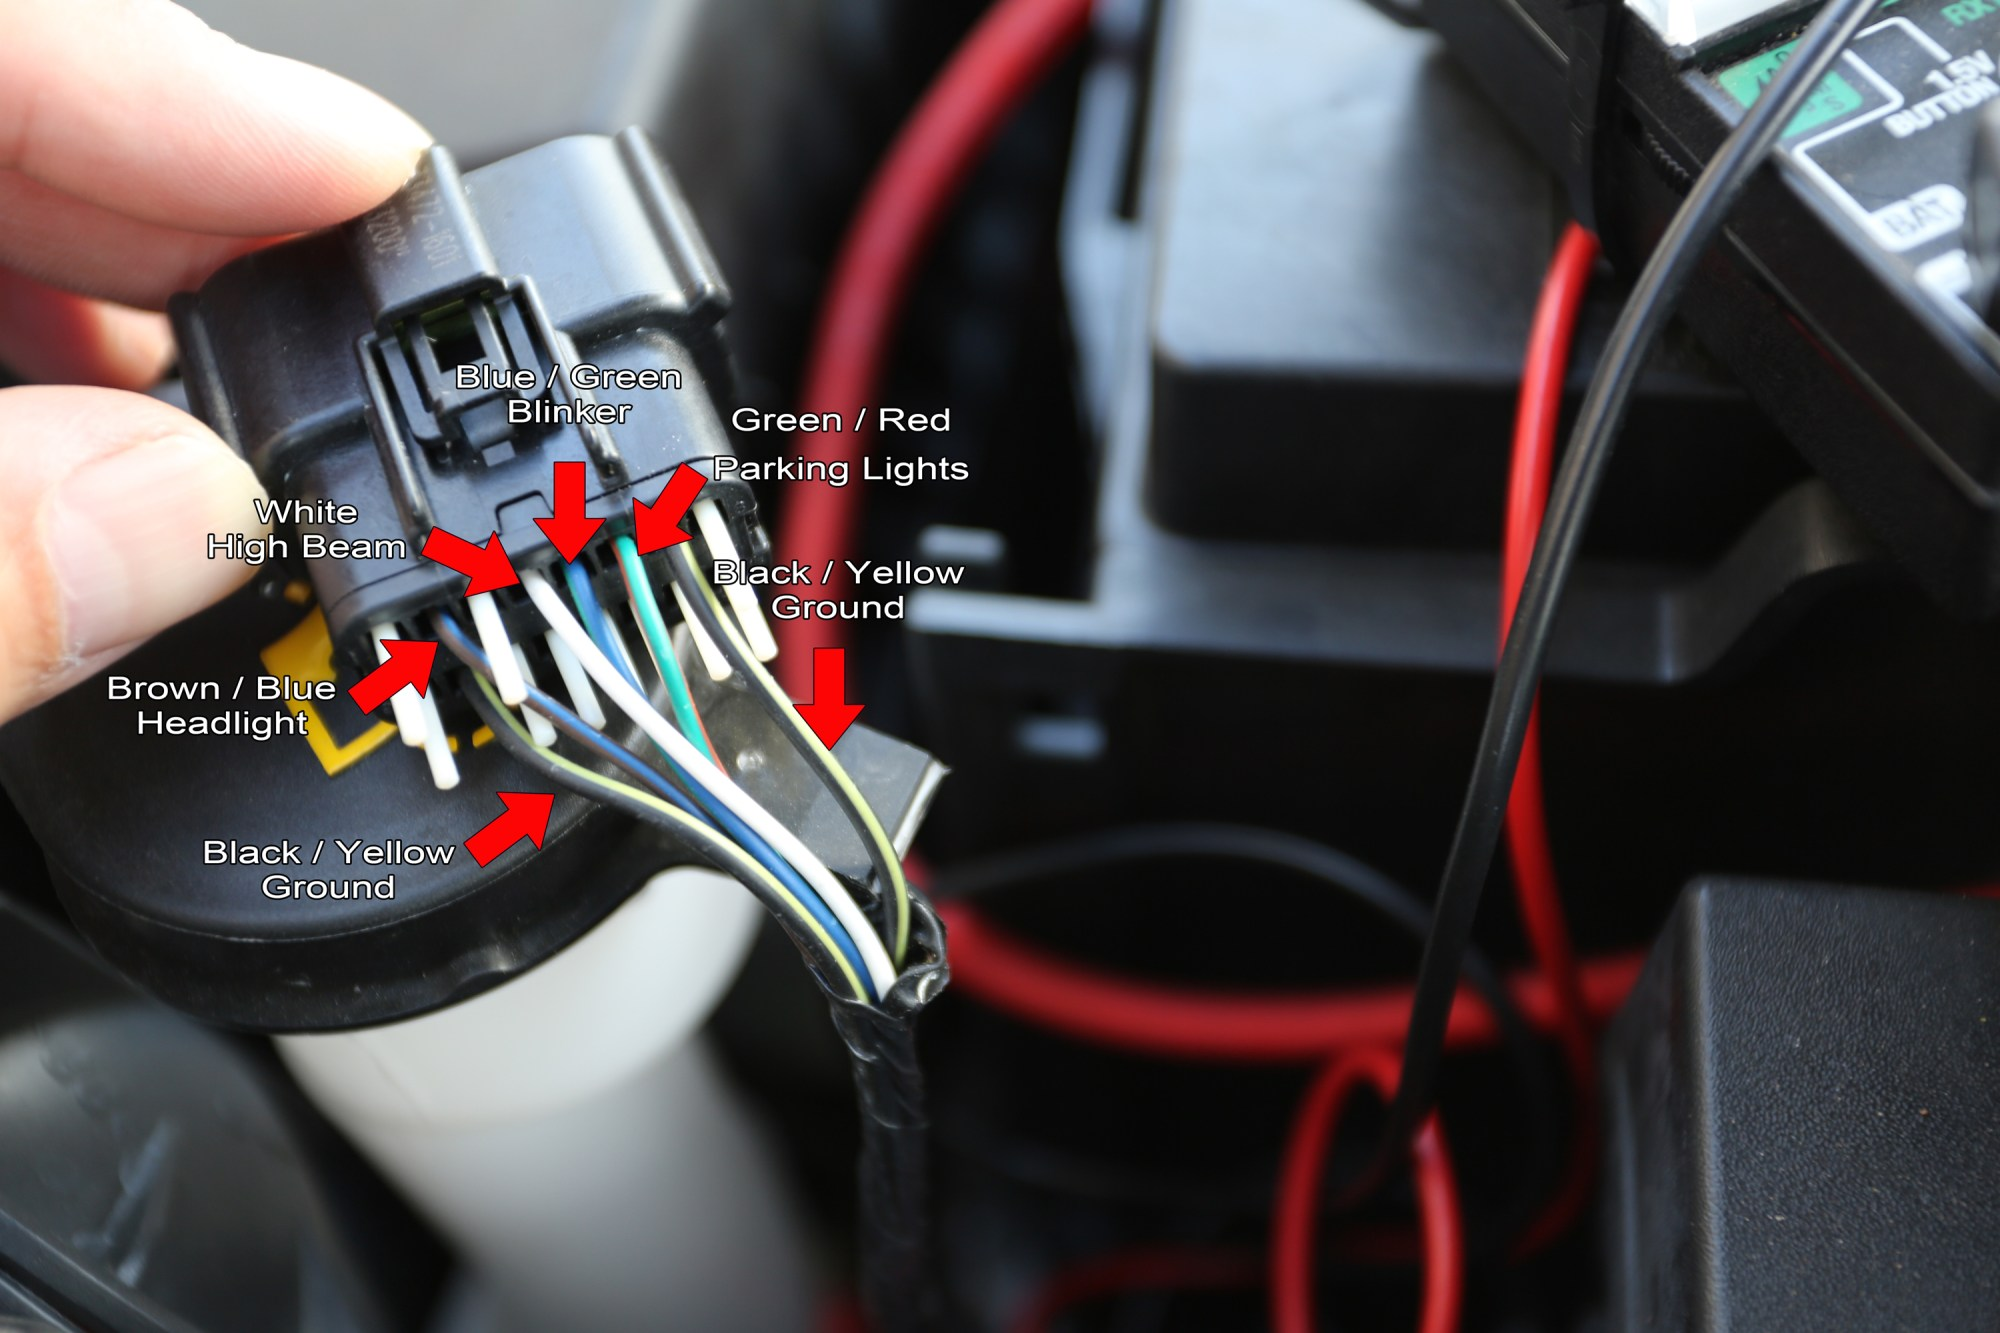 hight resolution of green red wire parking lights black yellow wires ground brown blue wire head light white wire high beam